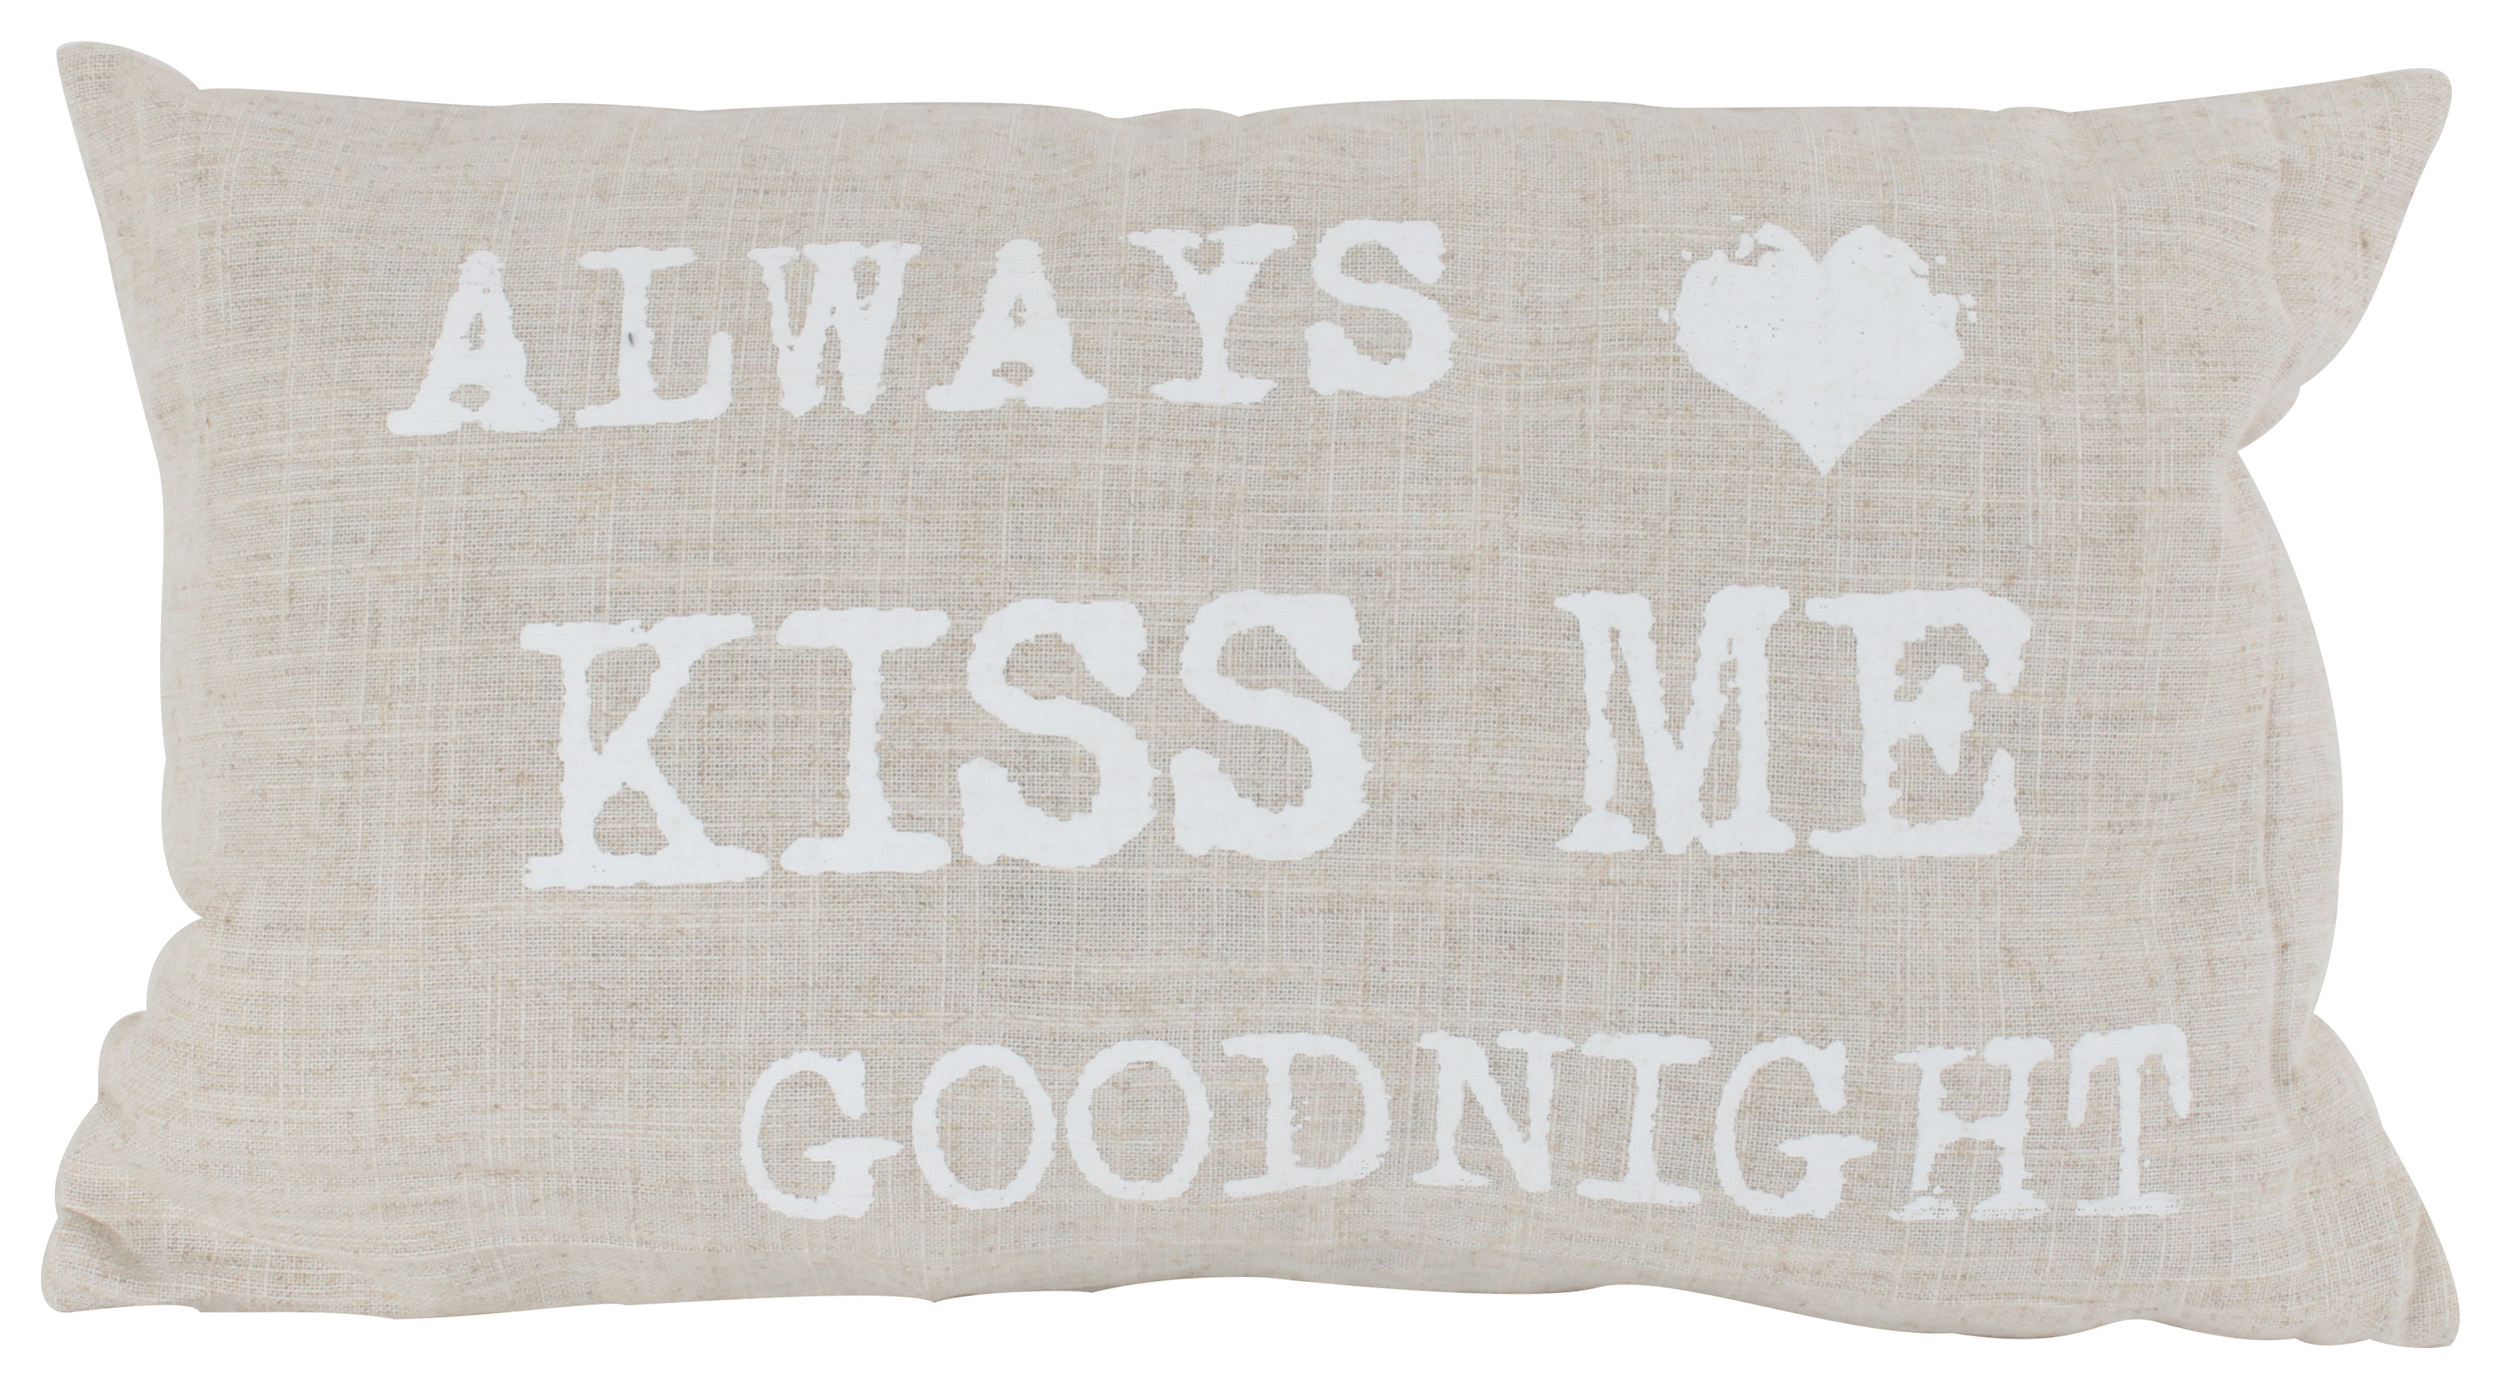 €17 FABRIC FILLING CUSHION 'ALWAYS' IN BEIGE COLOR 30Χ50 (80% COTTON,20%POLYESTER)